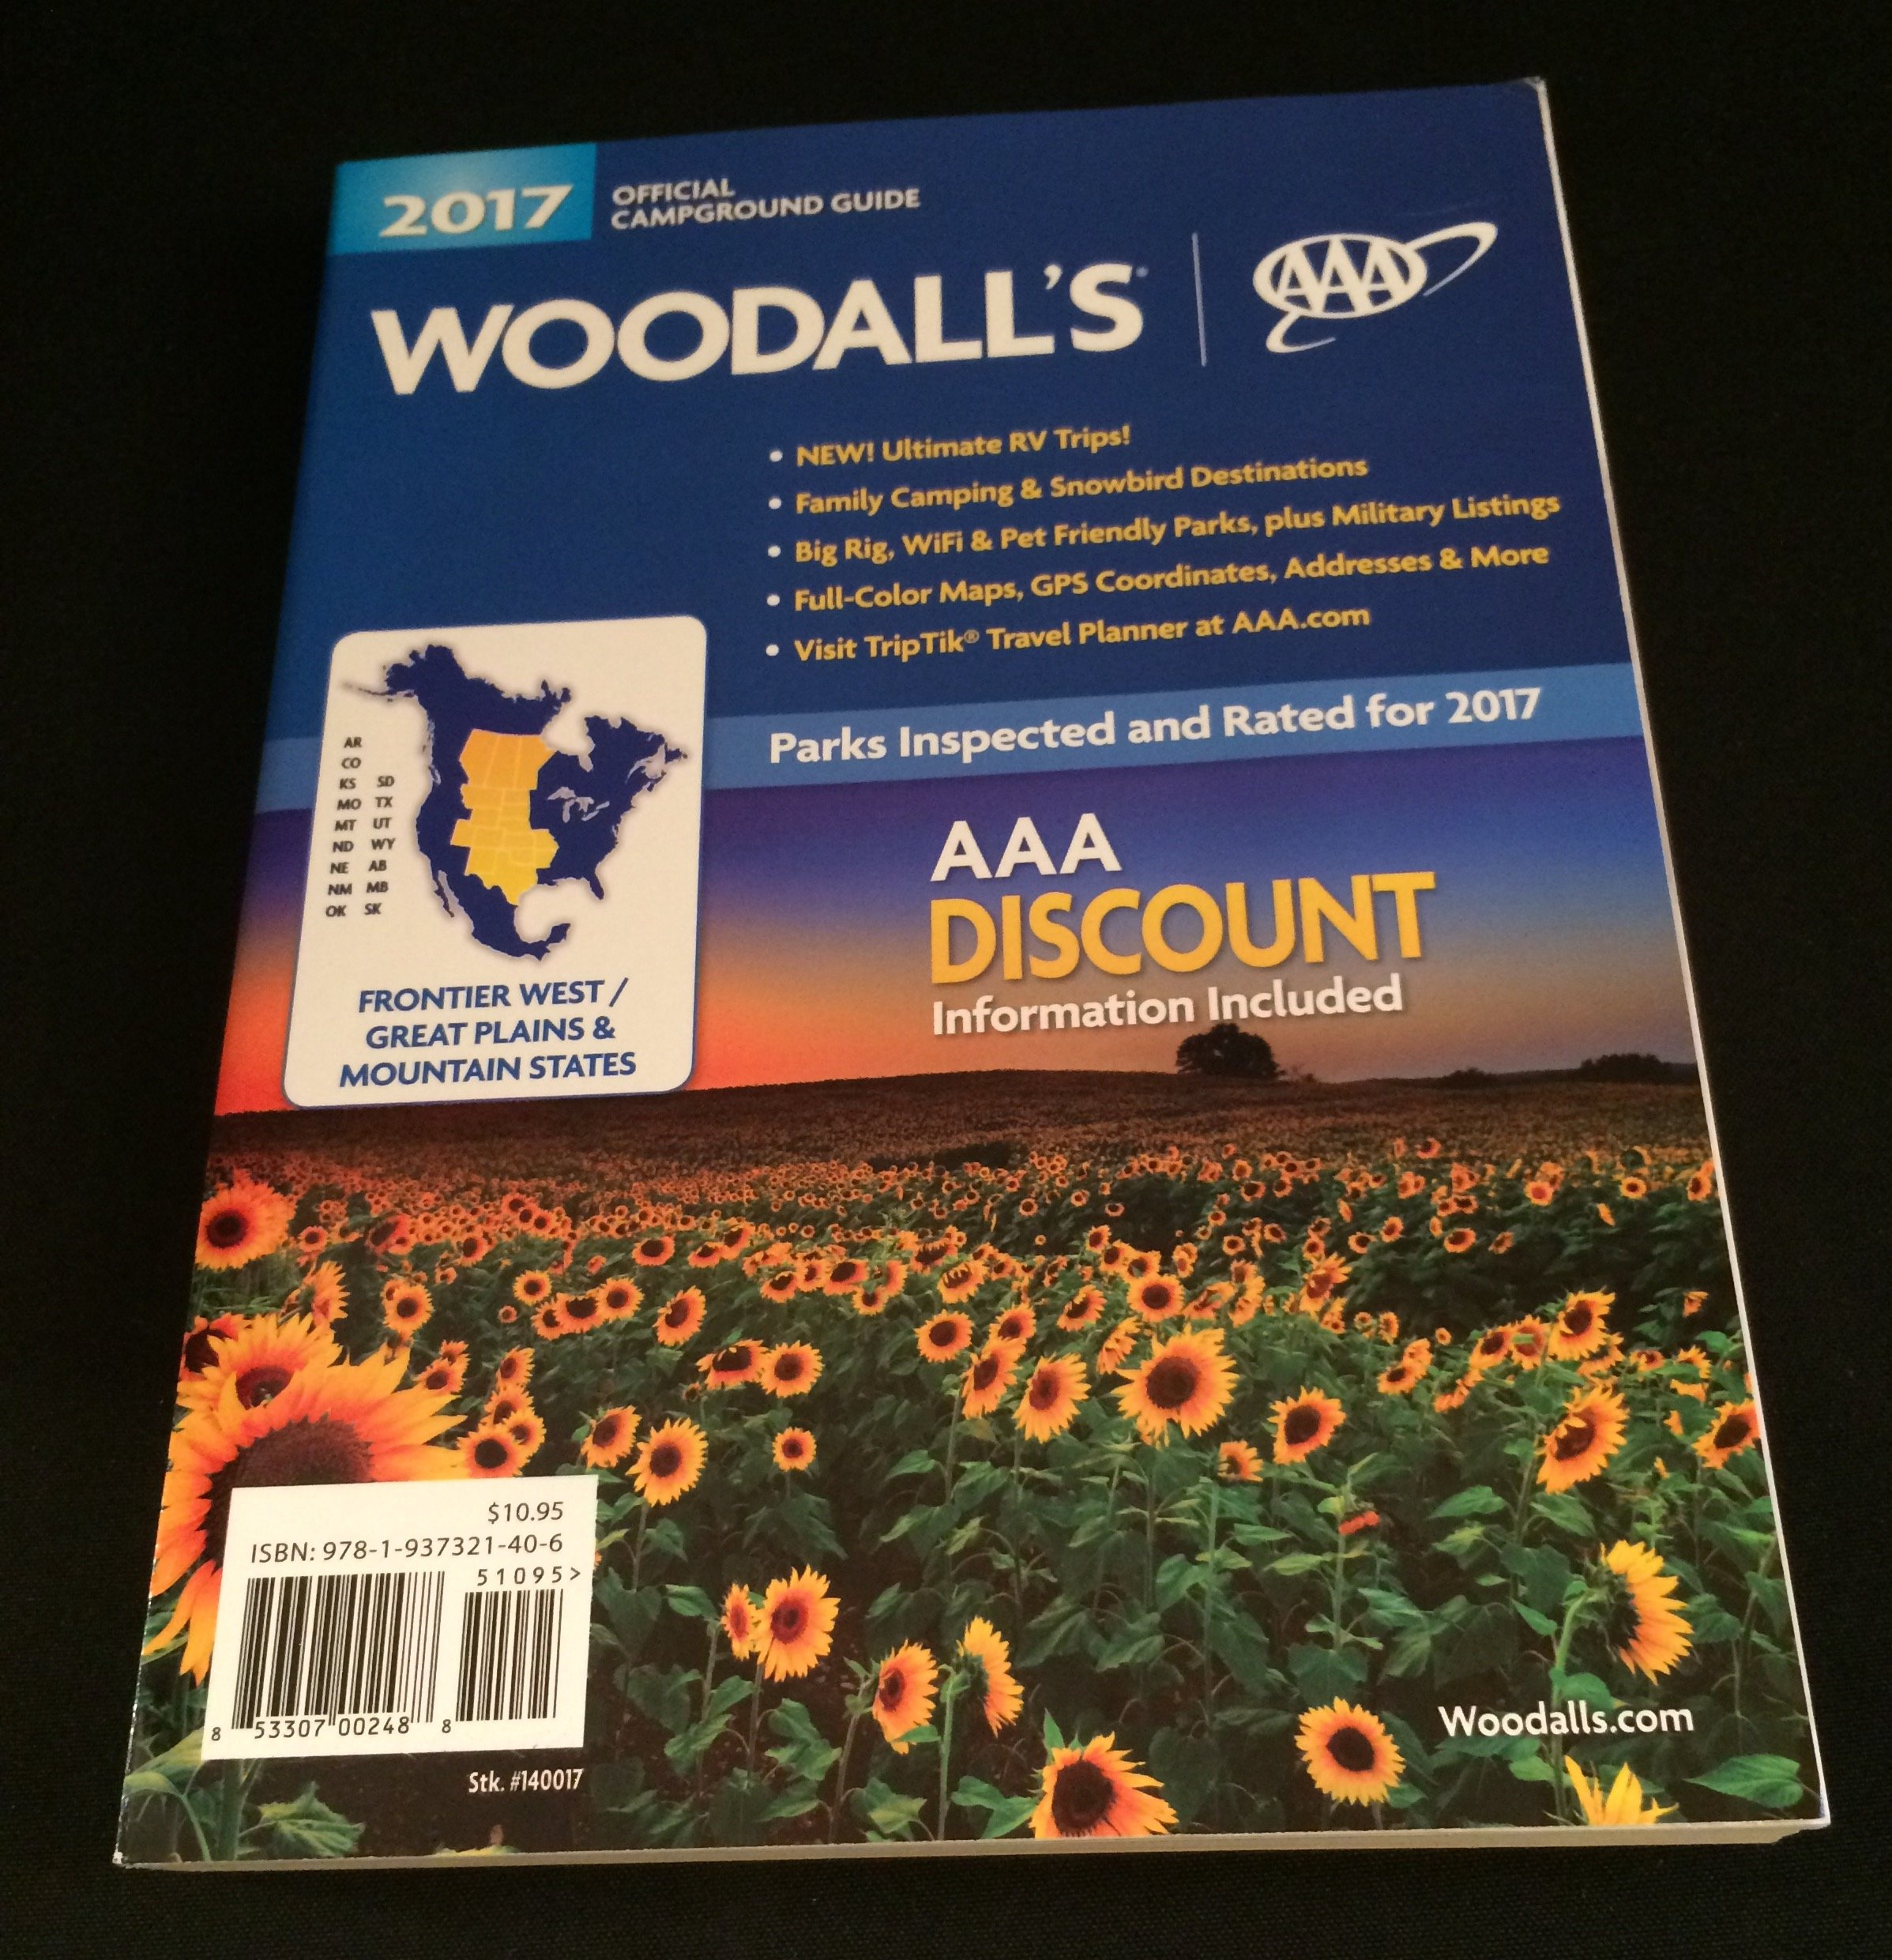 Woodall's 2017 Official Campground Guide Frontier West/Great